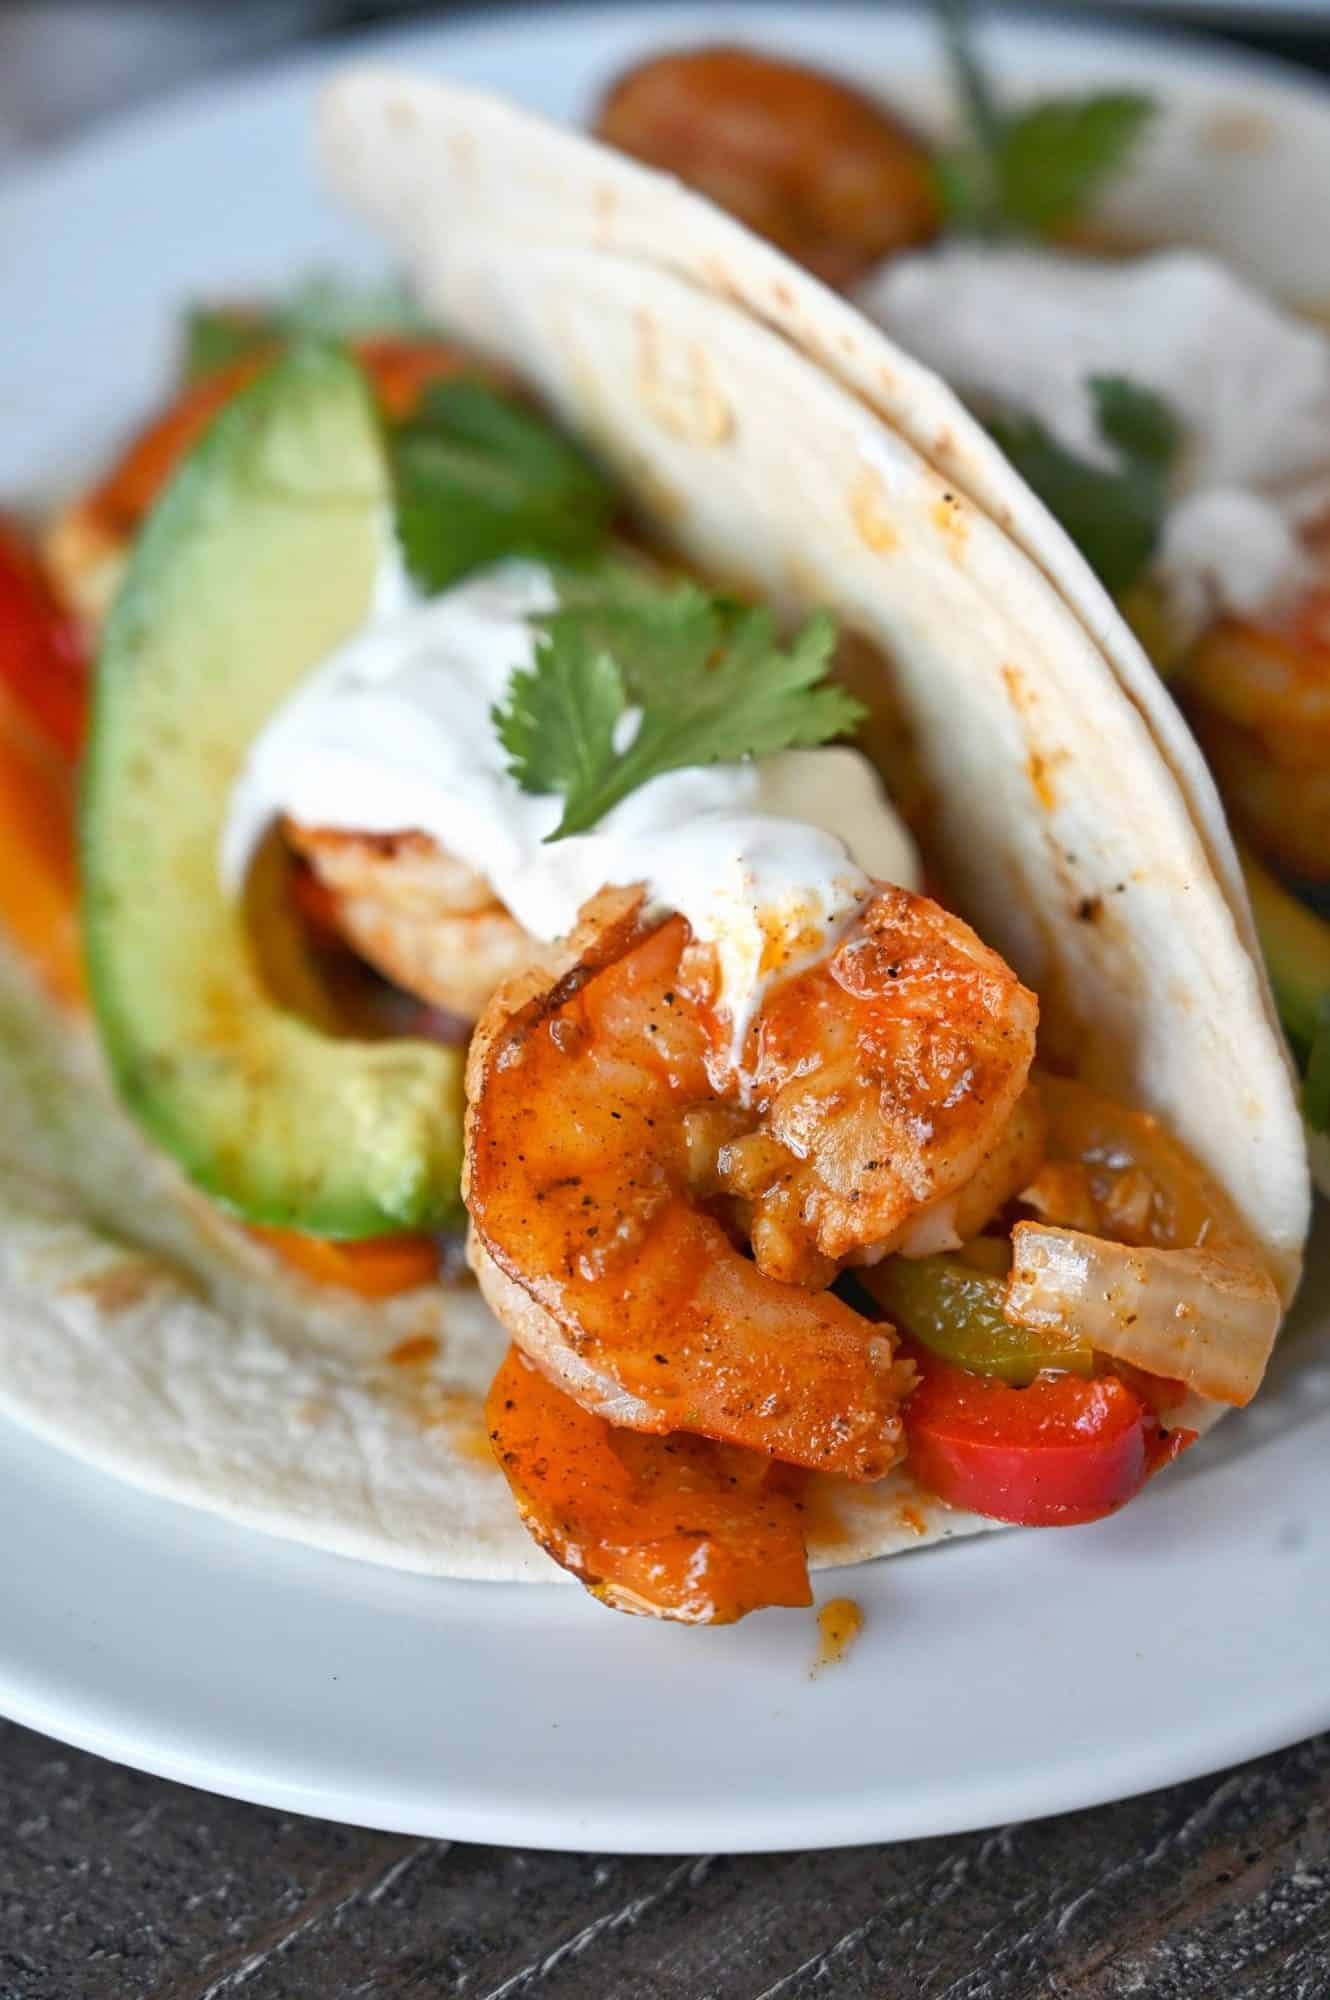 Cajun shrimp fajitas in a flour tortilla with a slice of avacado, sourcream and cilantro.